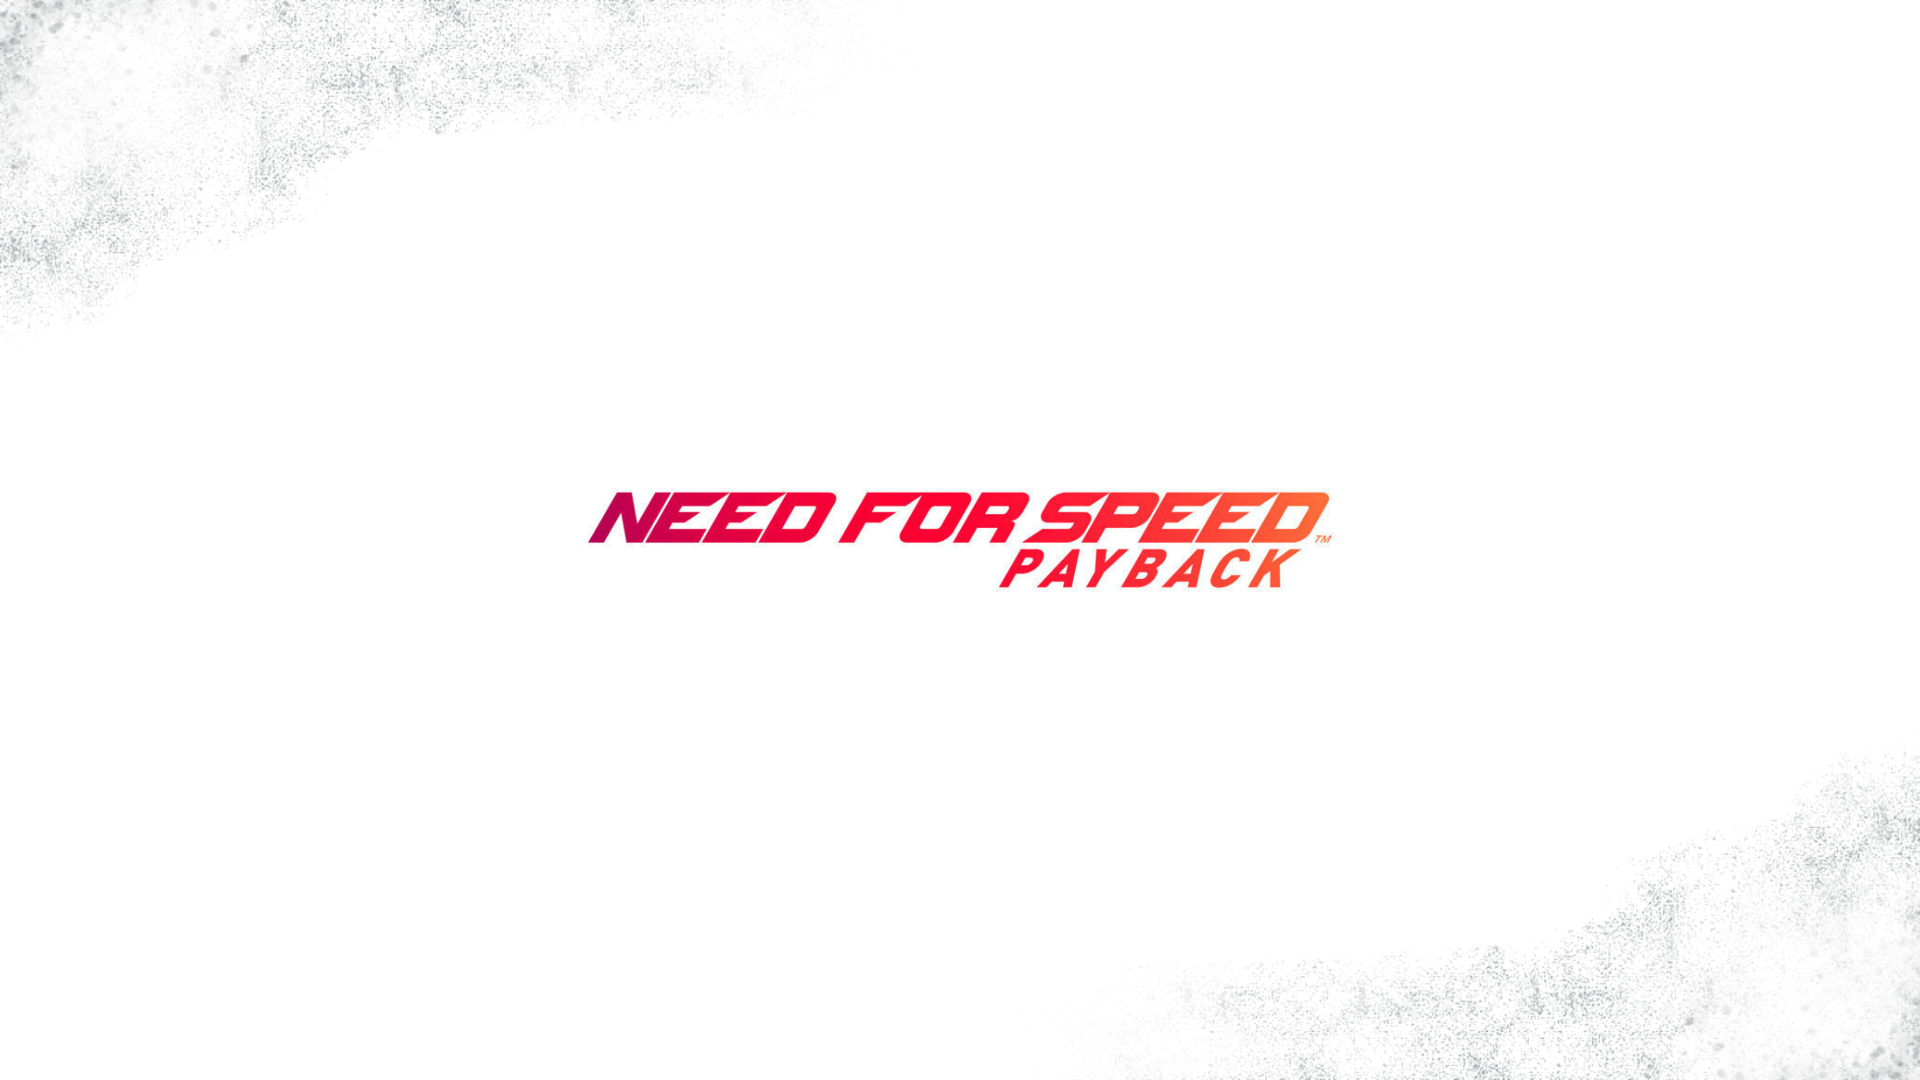 Need For Speed Payback Wallpaper by Donnesmarcus 1920x1080